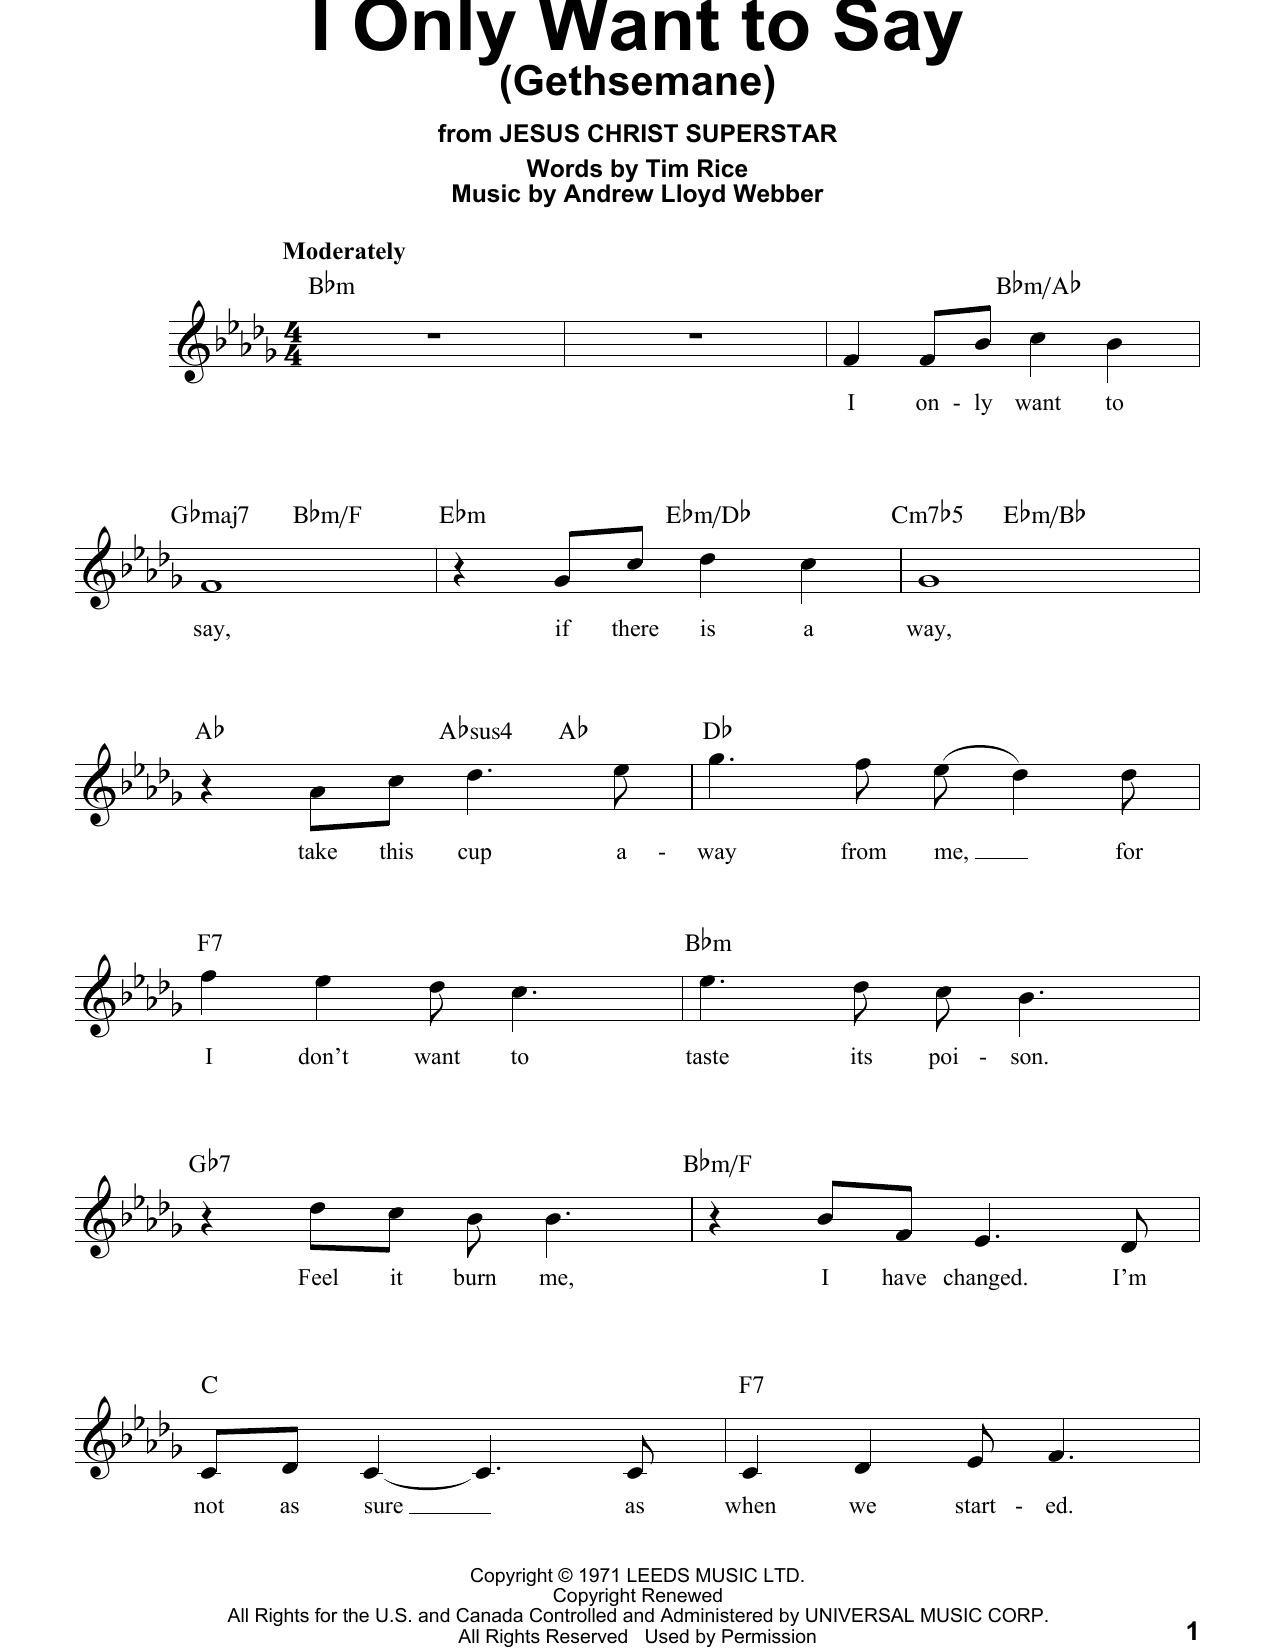 I Only Want To Say (Gethsemane) Sheet Music